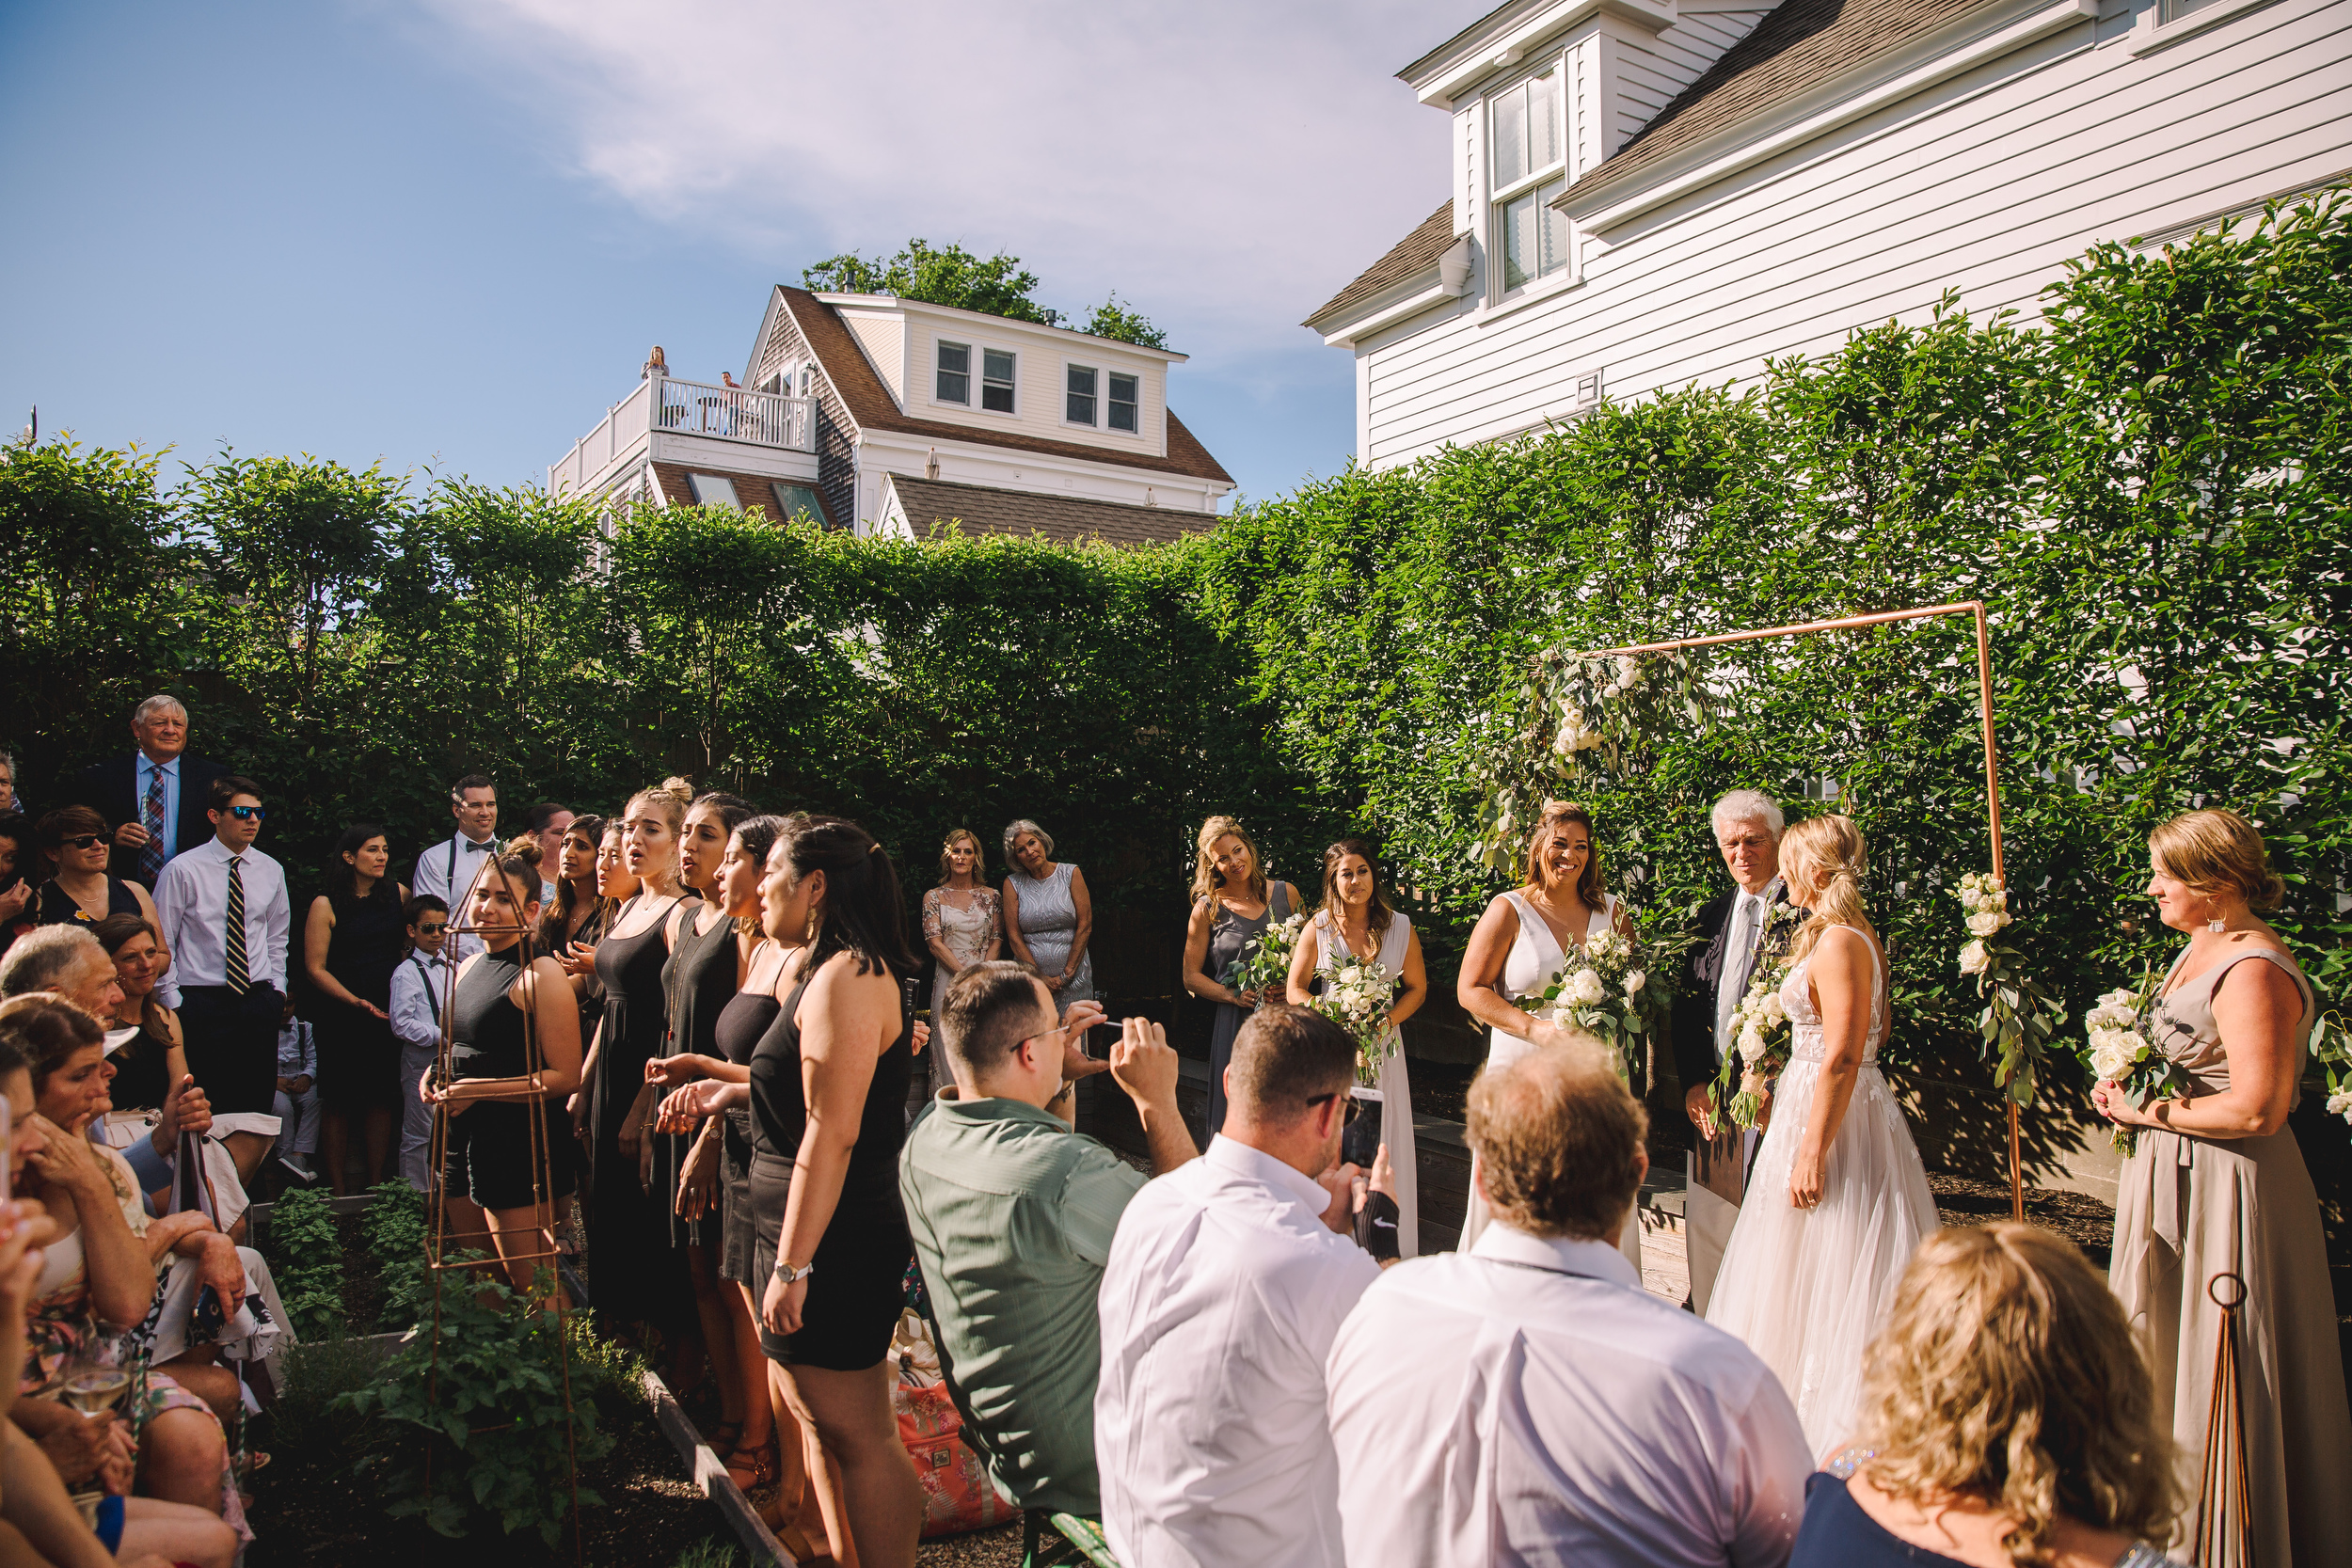 STRANGERS & saints back patio for wedding ceremony in provincetown